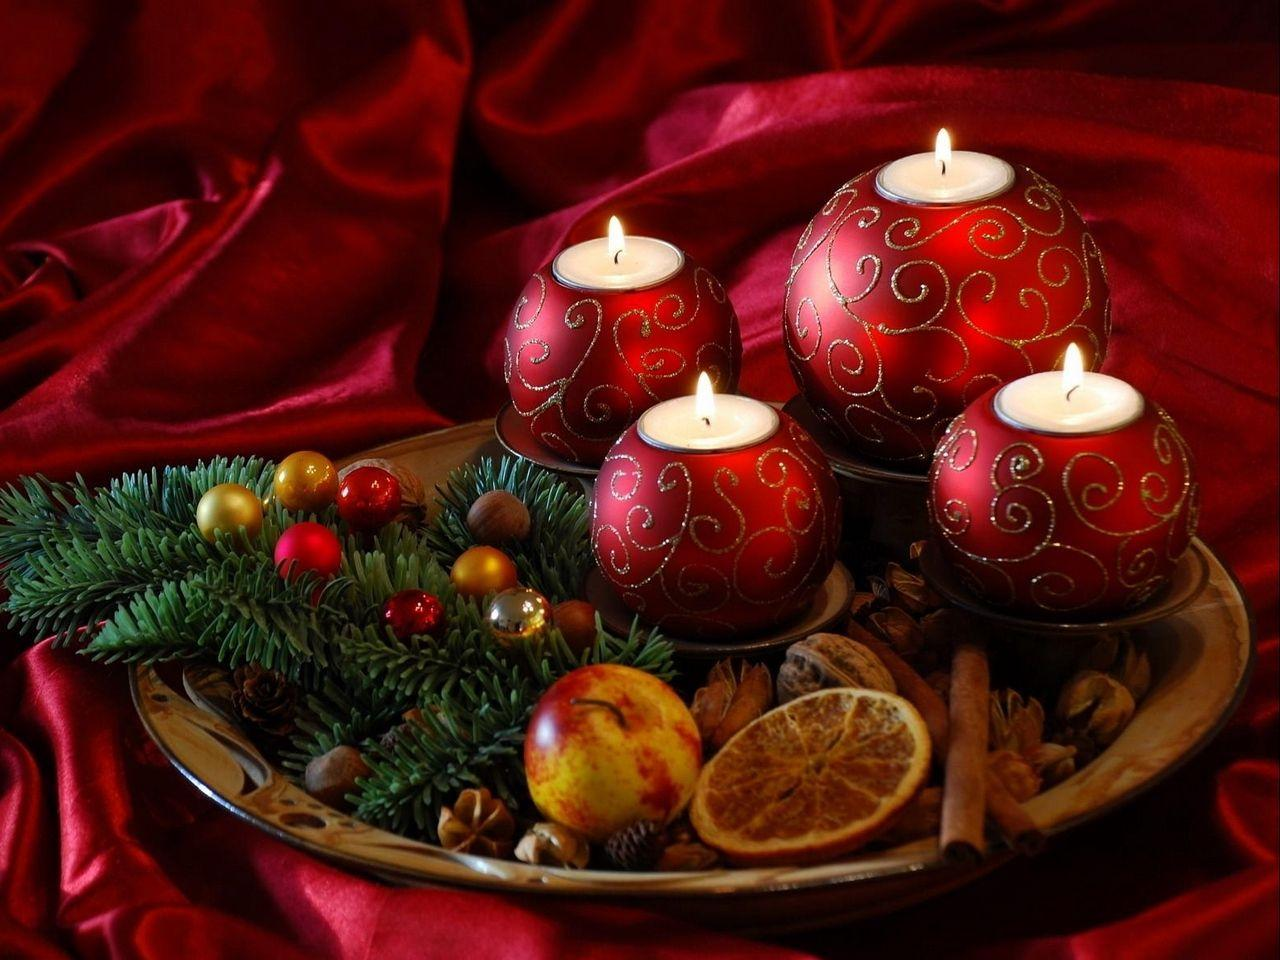 Download wallpaper 1280x960 new year, christmas, candles, needles ...